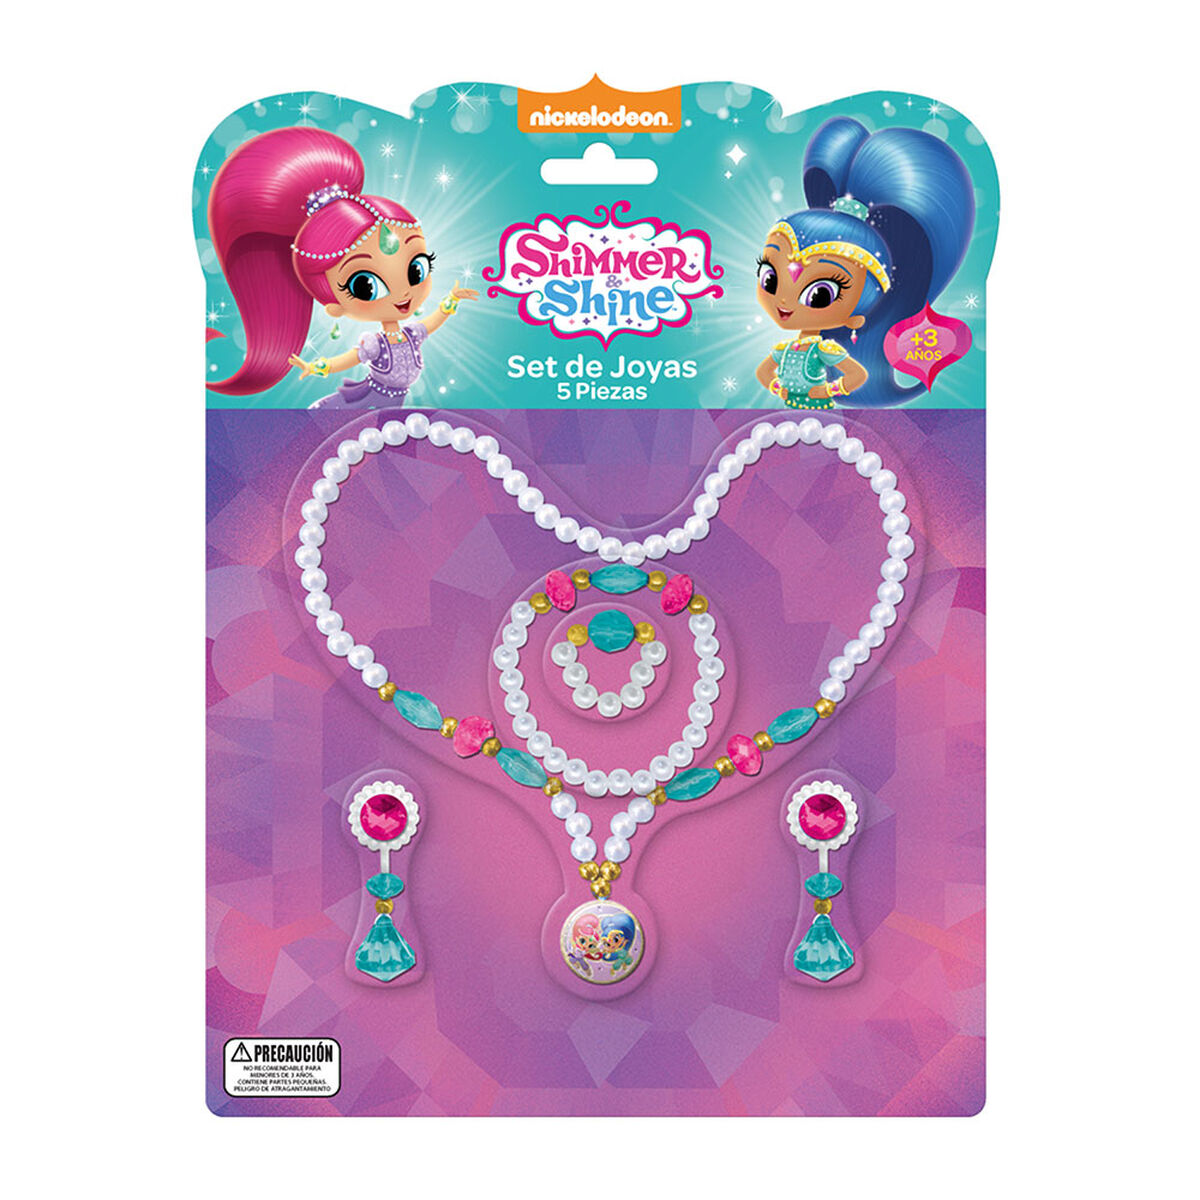 Set De Joyas Shimmer And Shine Nickelodeon